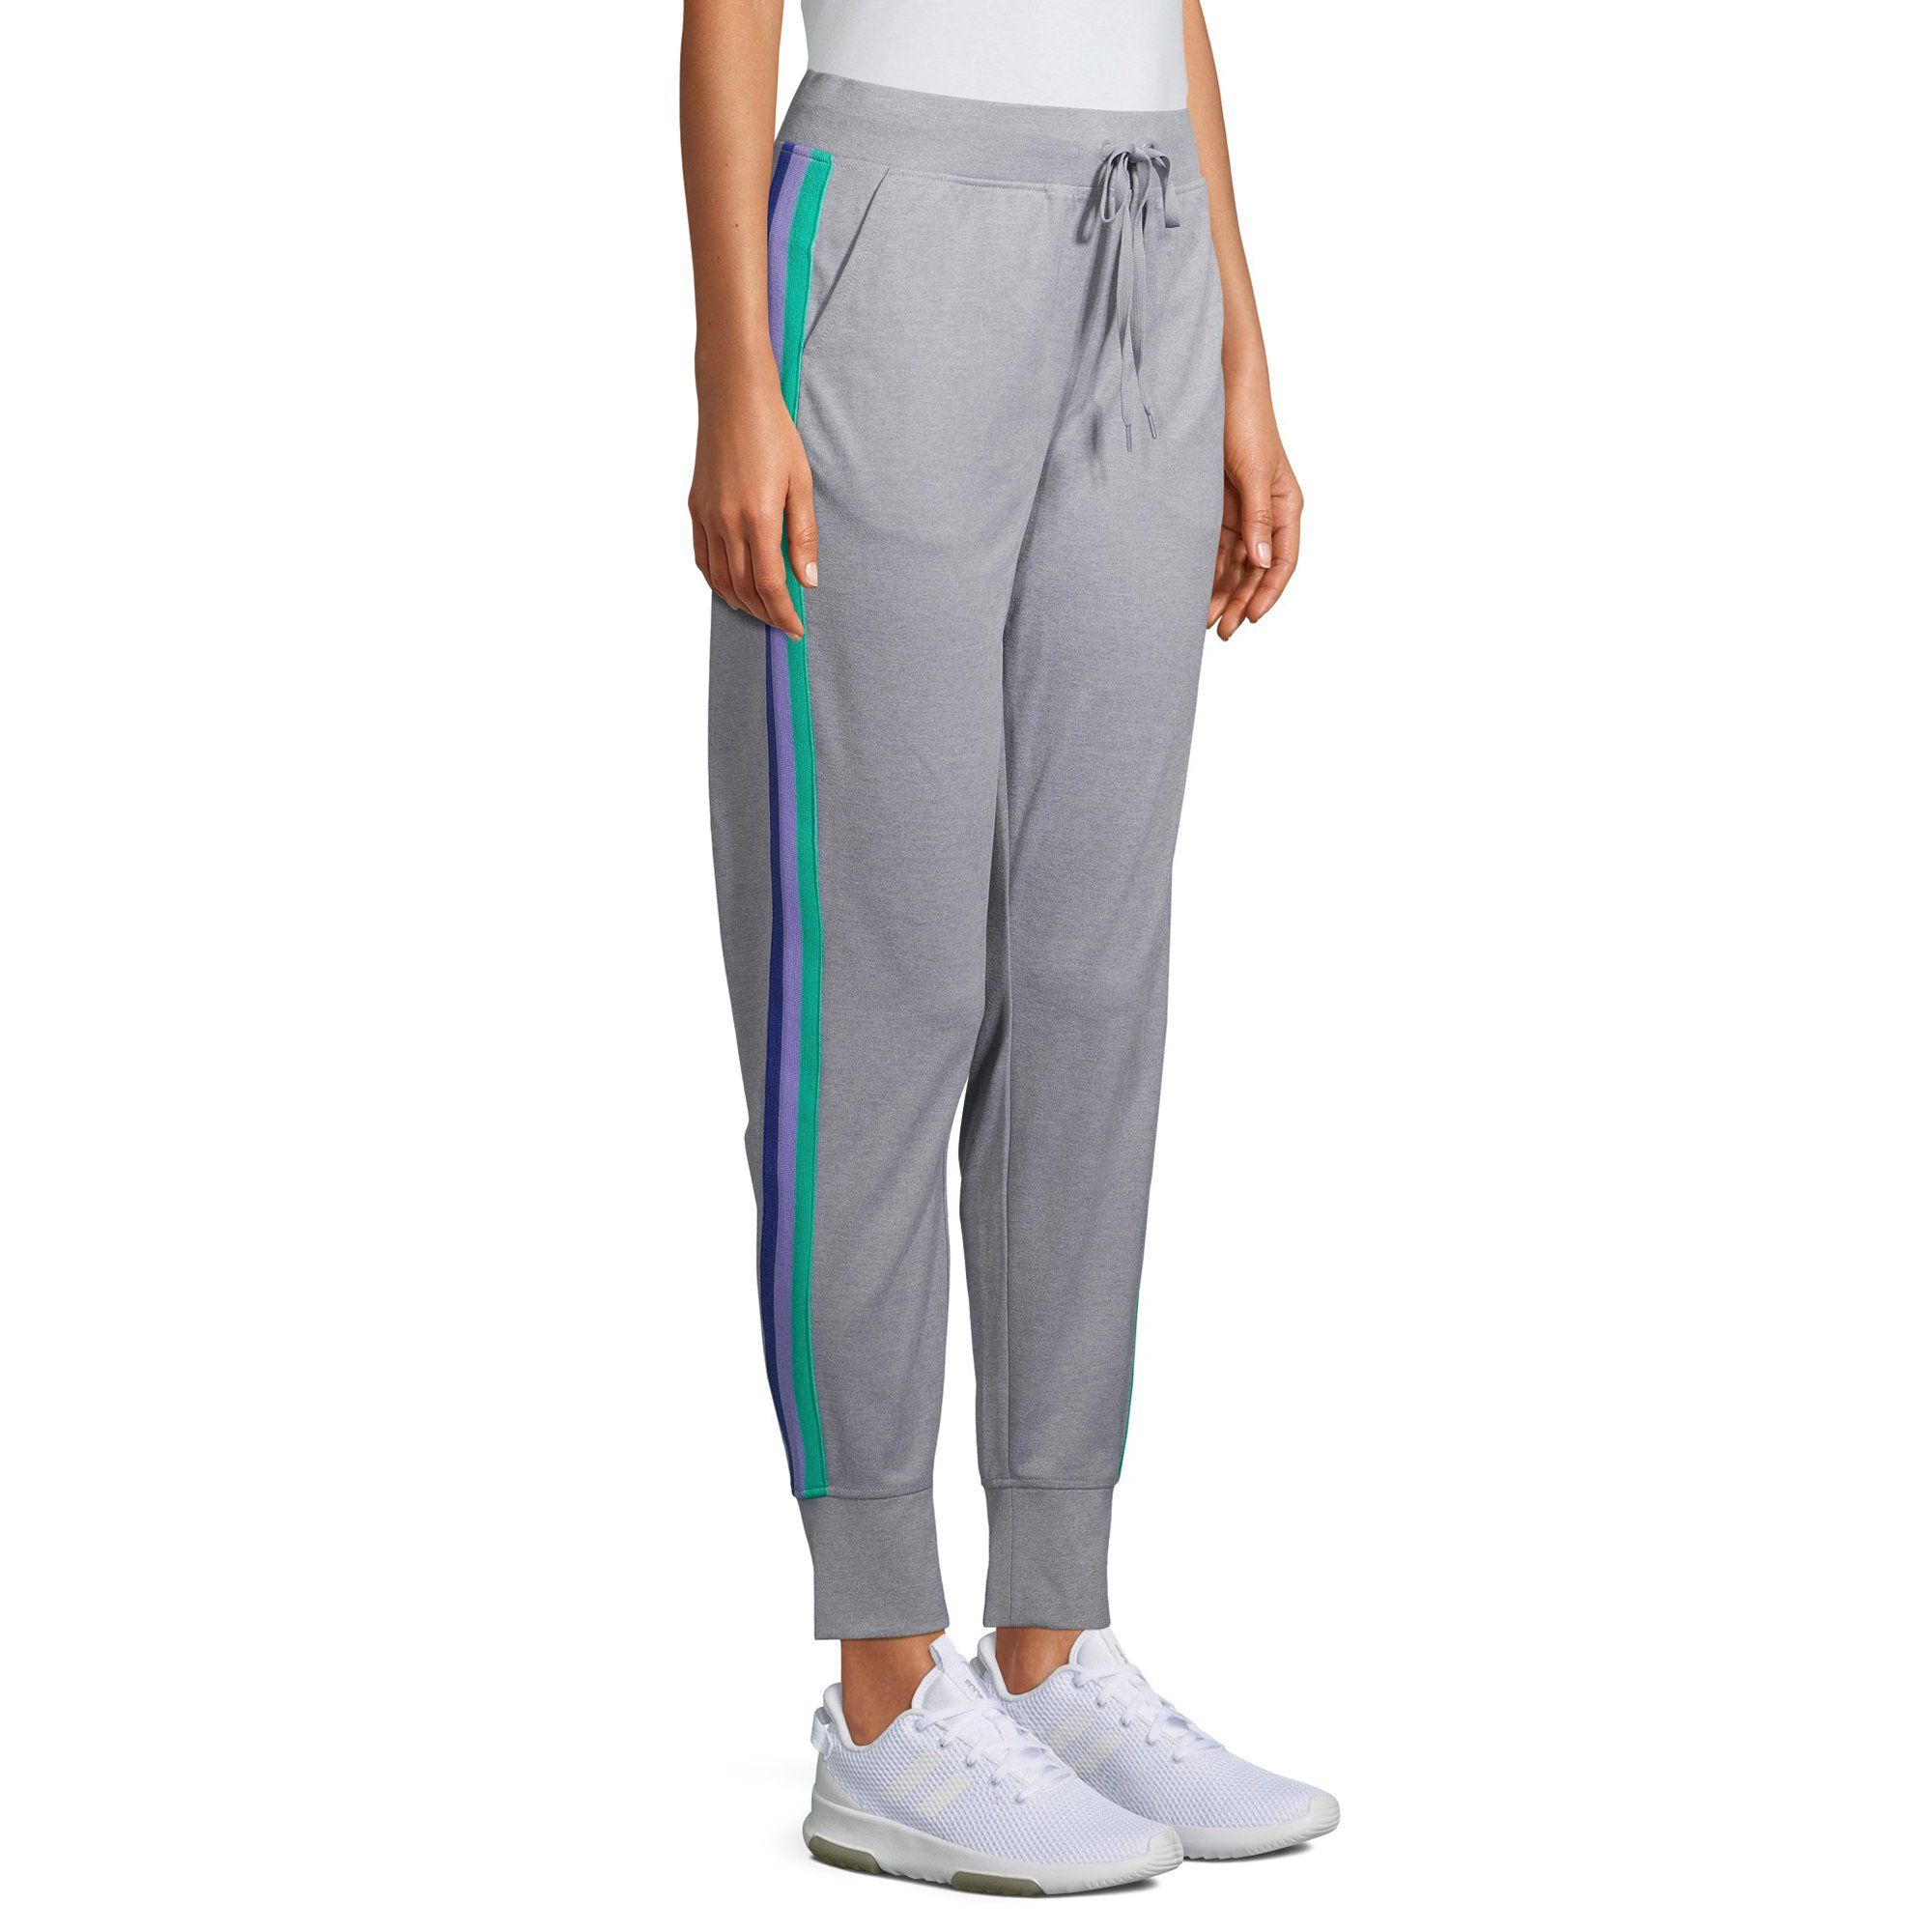 Athletic Works Athletic Works Women S Athleisure Track Jogger Pants Walmart Com Athleisure Women Athleisure Joggers Jogger Pants [ 2000 x 2000 Pixel ]